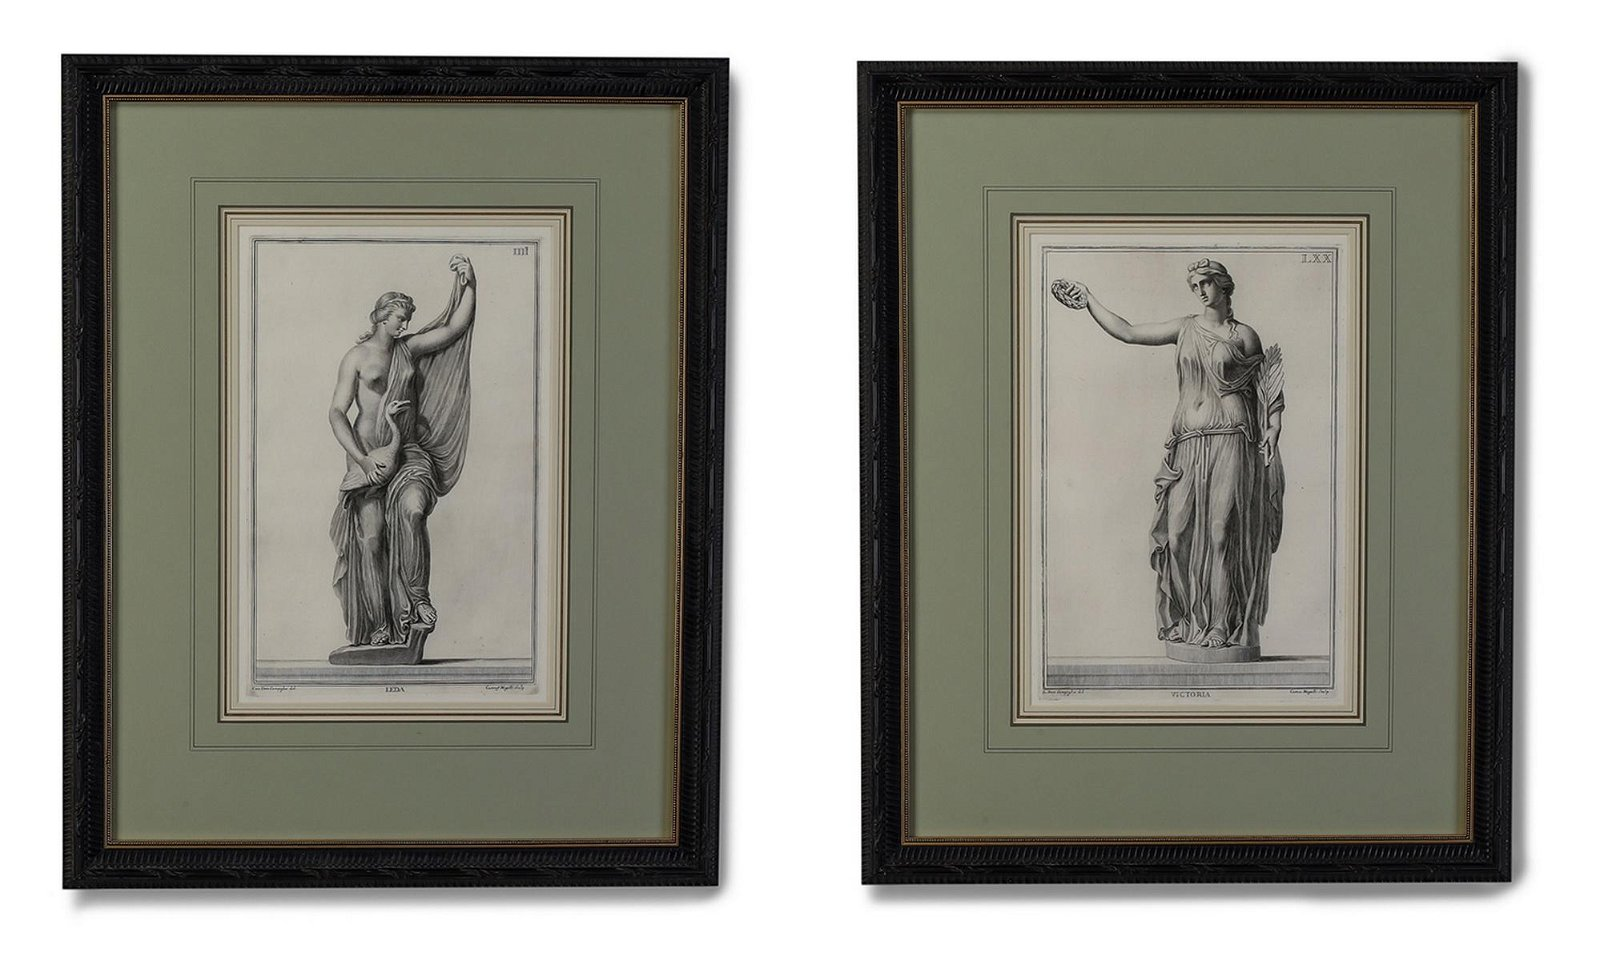 (2) Mogalli 18th c. engravings in the classical taste